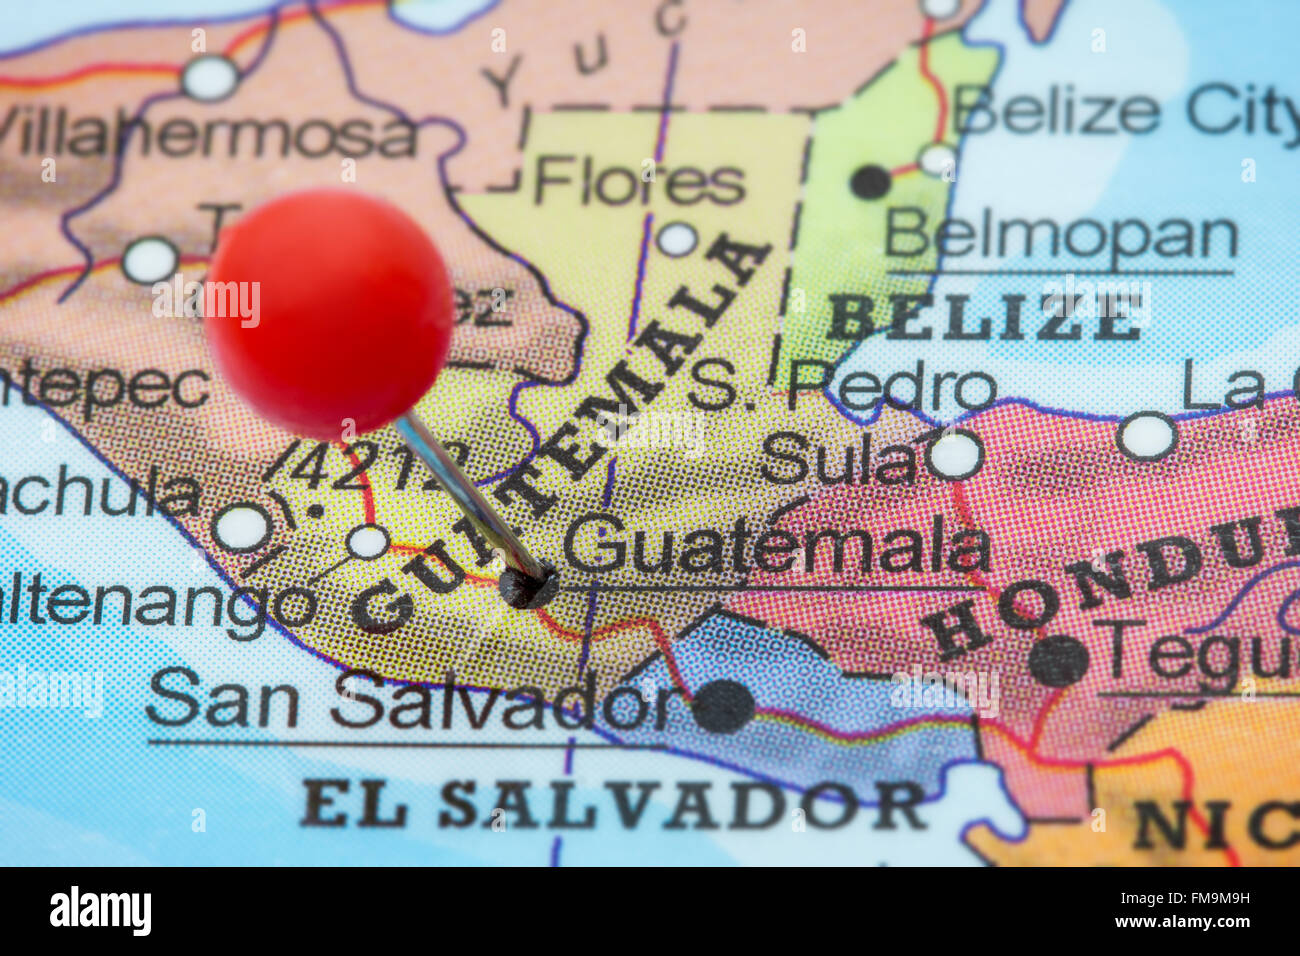 Map of guatemala stock photos map of guatemala stock images alamy close up of a red pushpin in a map of guatemala city gumiabroncs